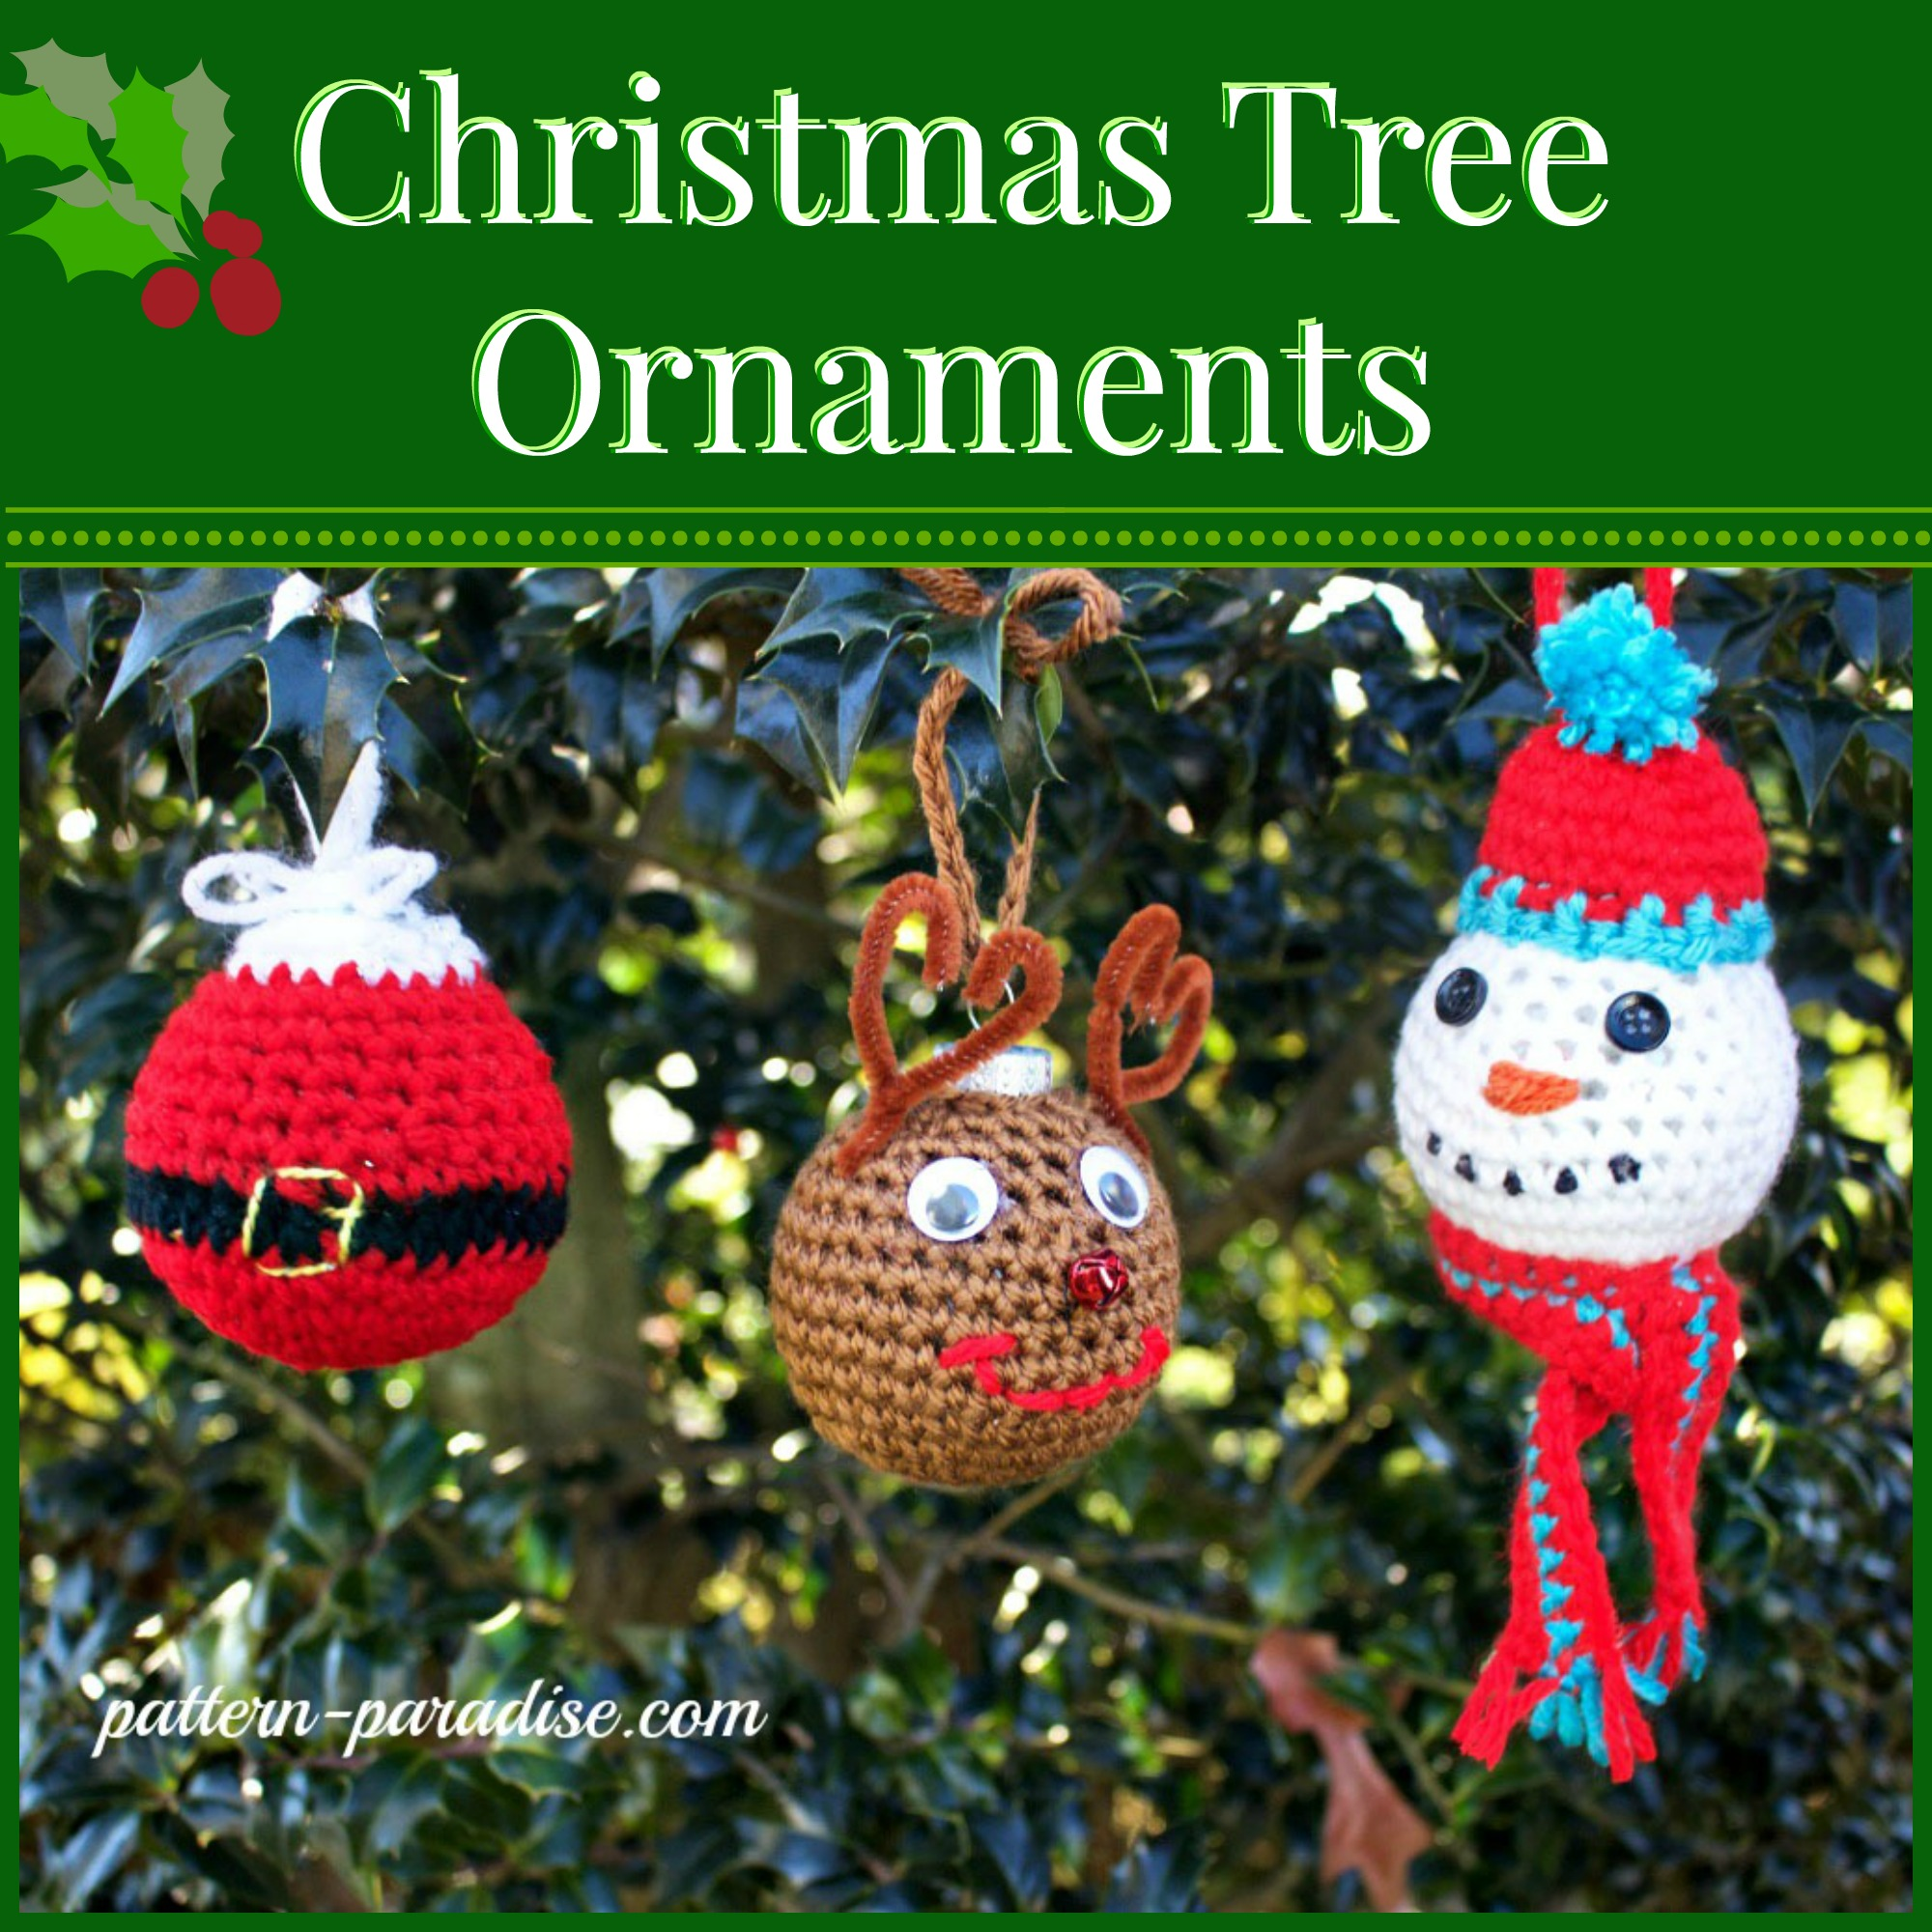 Free Crochet Pattern: Christmas Tree Ornaments Pattern Paradise